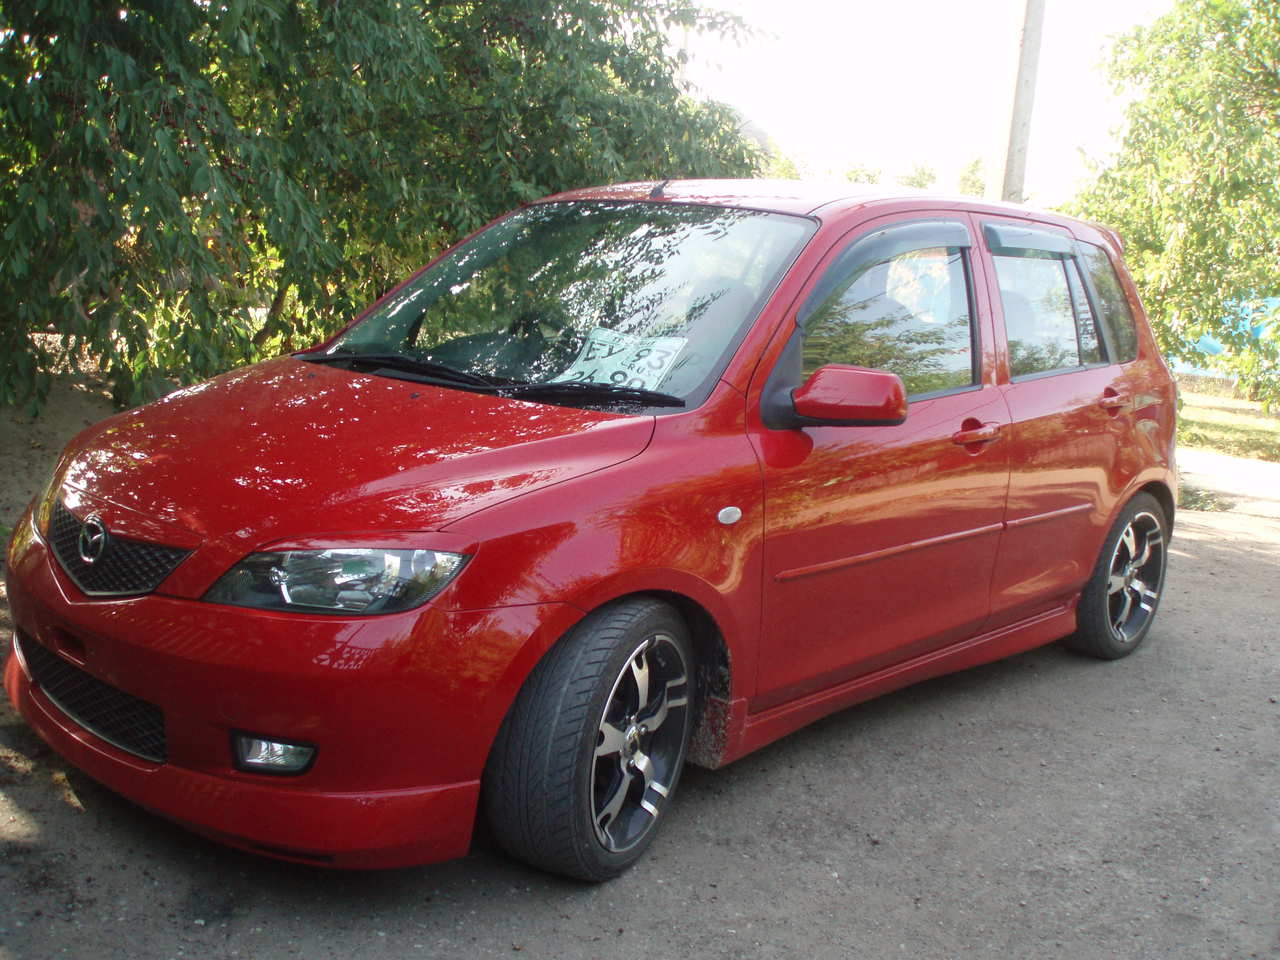 used 2005 mazda mazda2 photos 1500cc gasoline ff automatic for sale. Black Bedroom Furniture Sets. Home Design Ideas